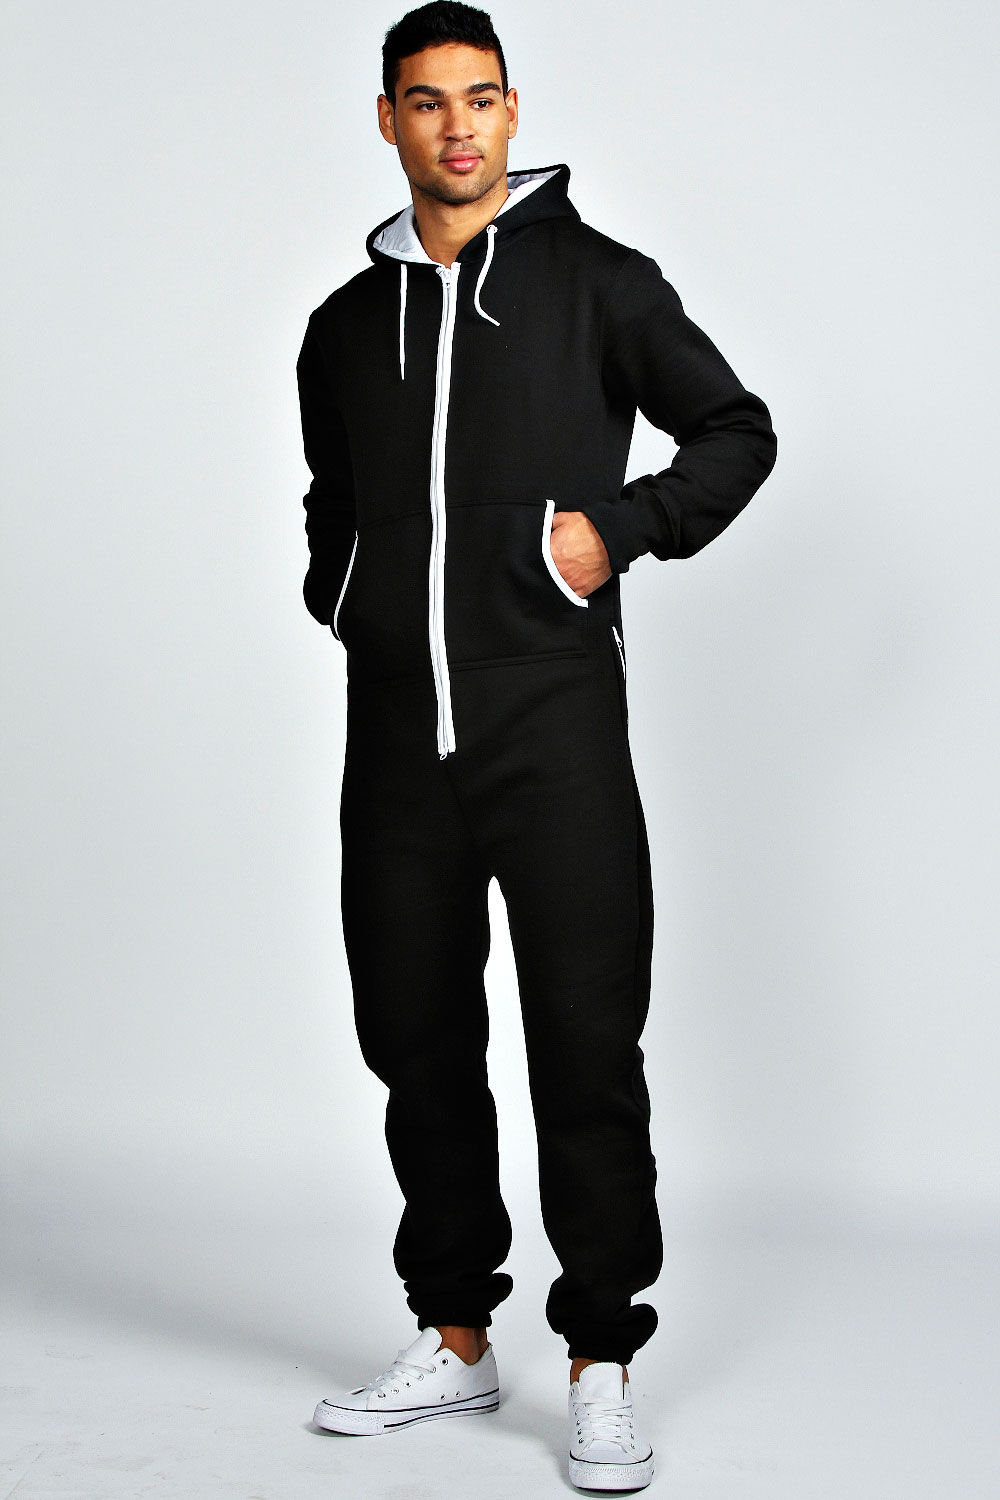 custom adult onesie plain colour